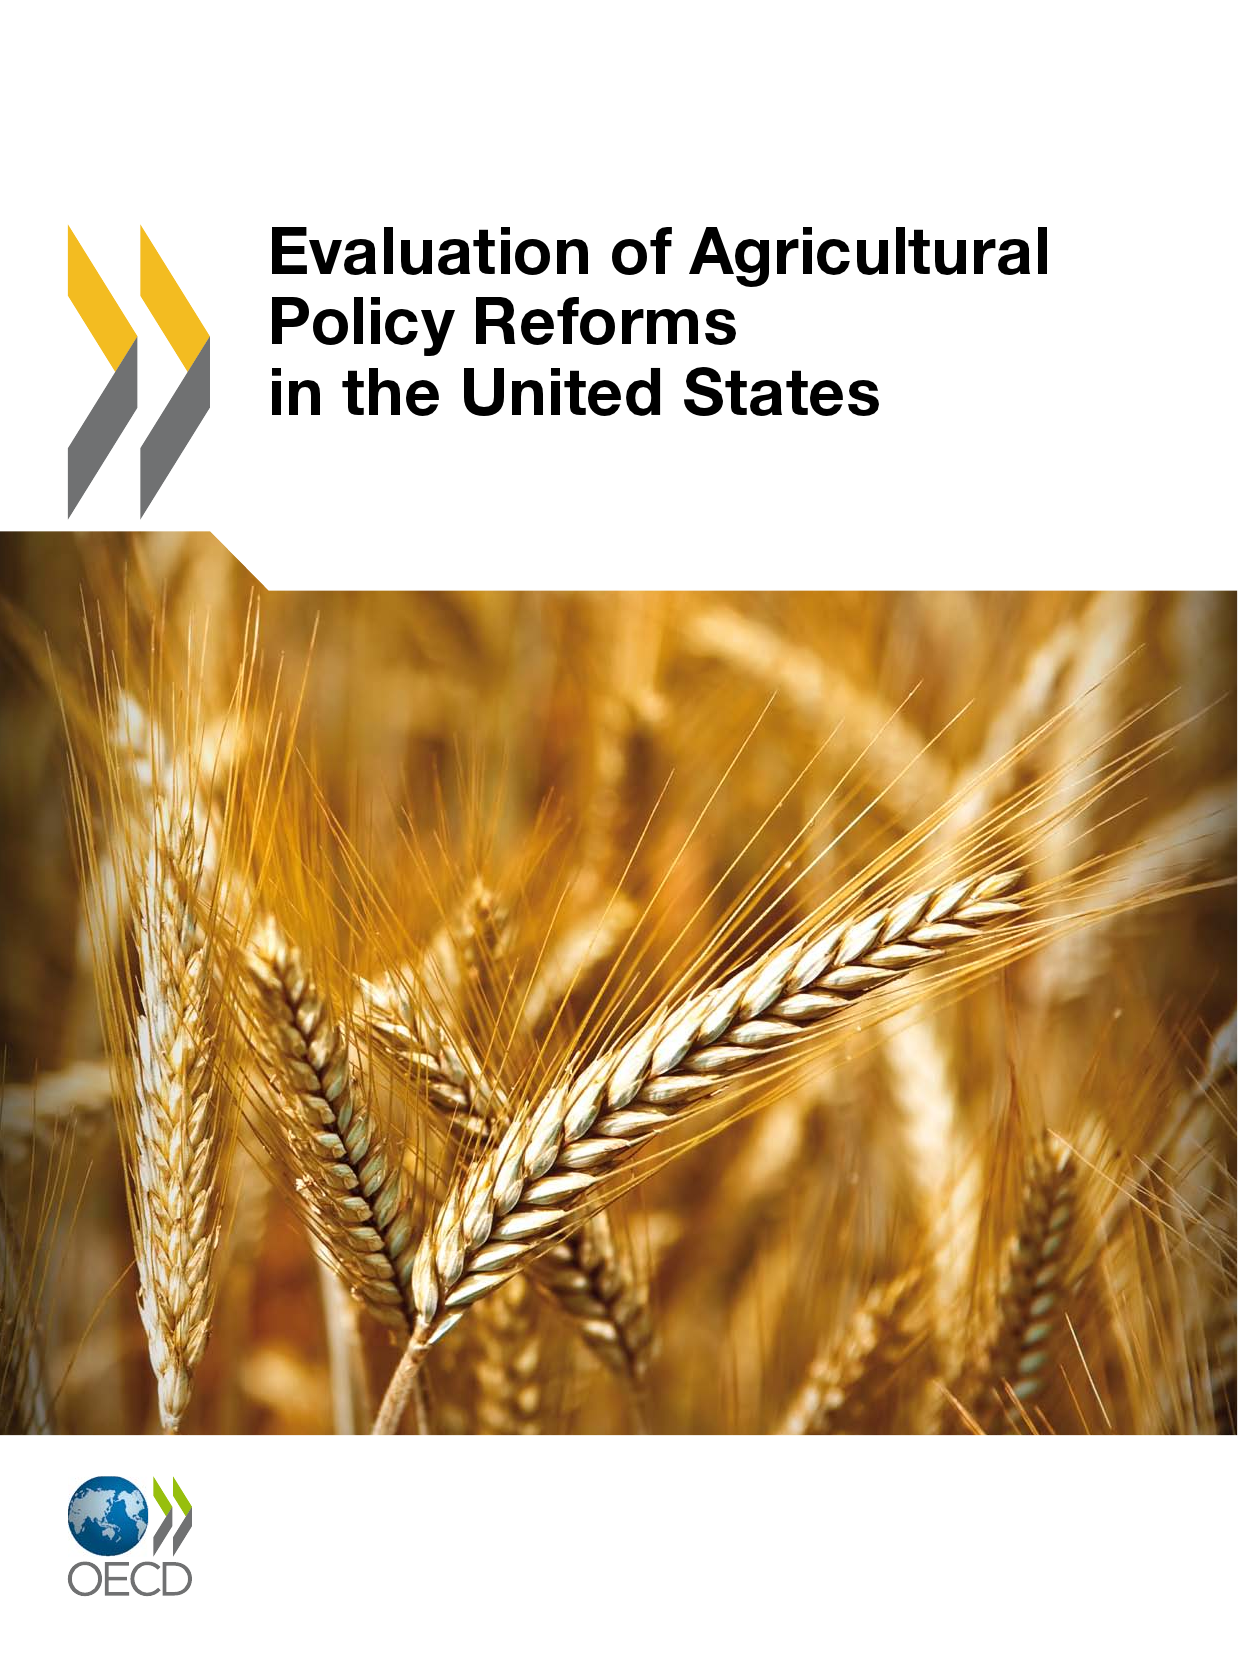 Evaluation of Agricultural Policy Reforms in the United States